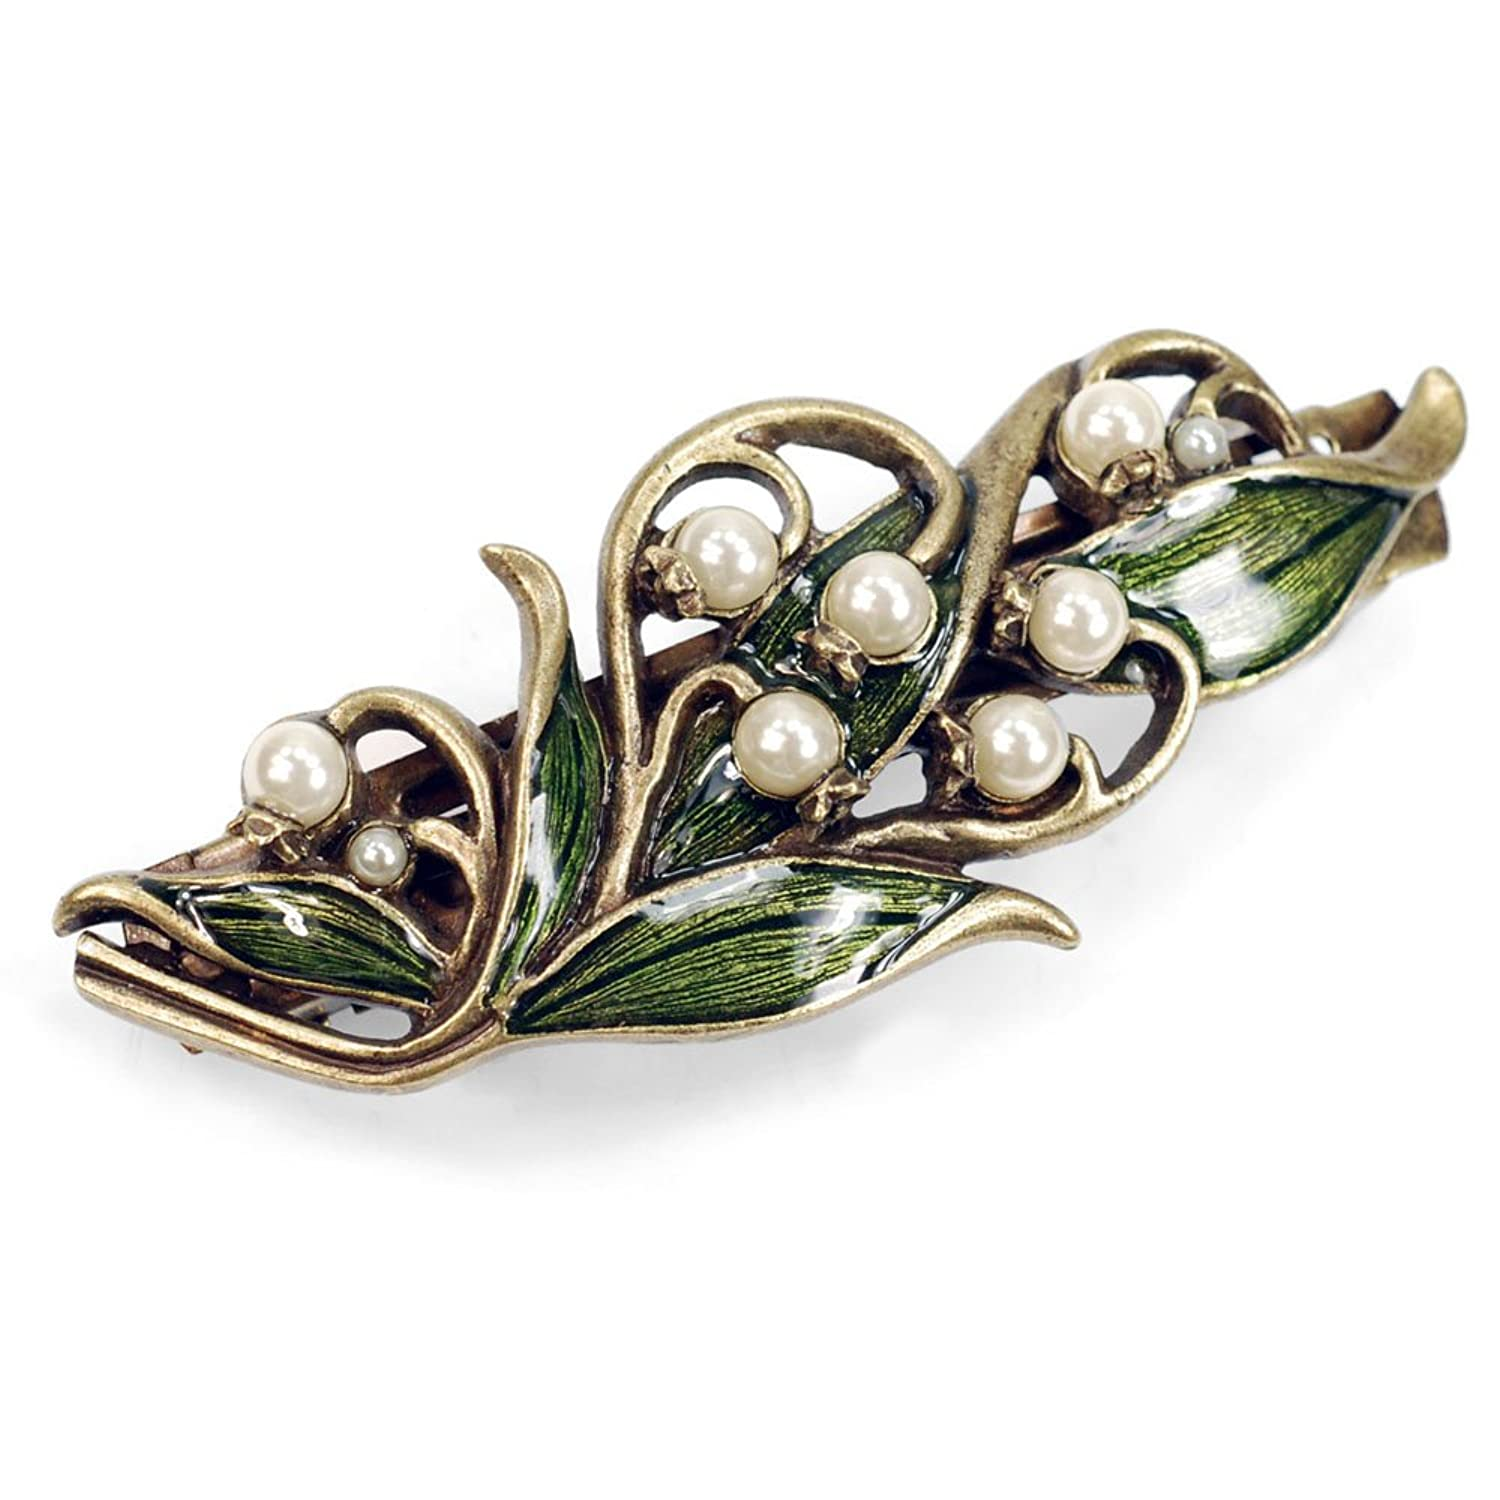 Vintage Style Jewelry, Retro Jewelry Vintage Lily of the Valley Bridal Flower Wedding Hair Barrette Clip $39.00 AT vintagedancer.com